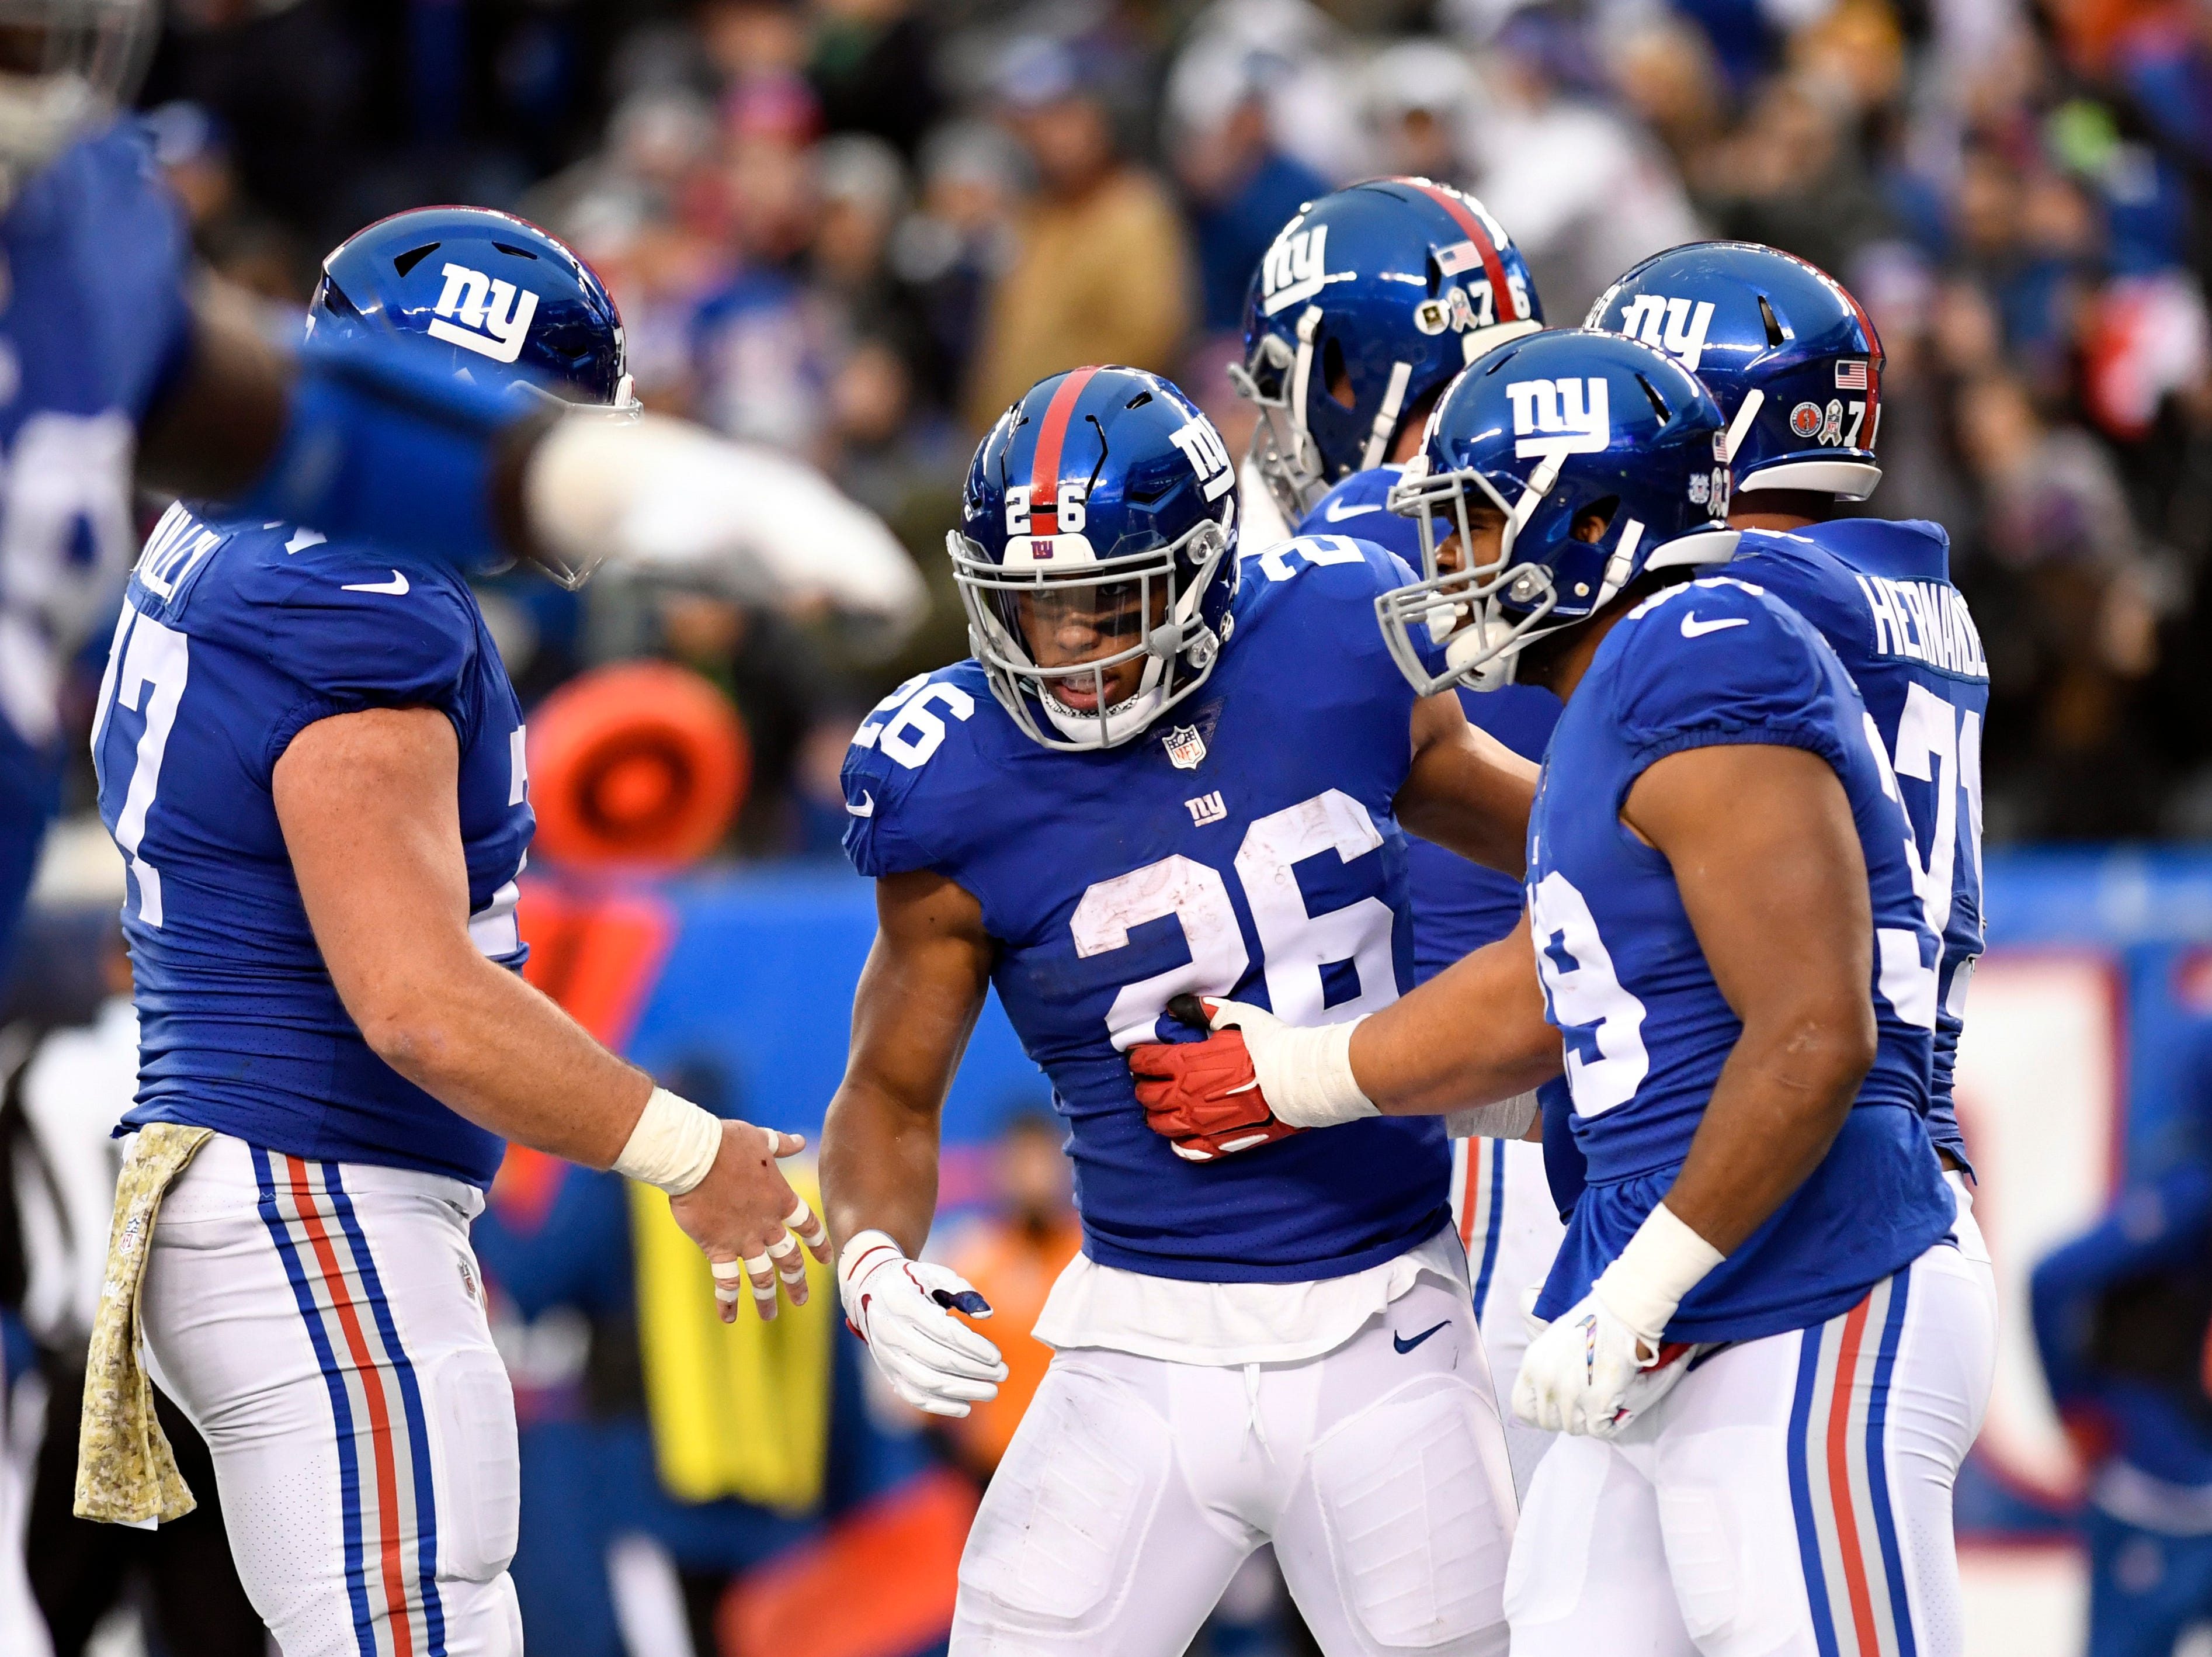 New York Giants running back Saquon Barkley (26) celebrates his touchdown in the second half. The New York Giants defeat the Tampa Bay Buccaneers 38-35 on Sunday, Nov. 18, 2018 in East Rutherford.